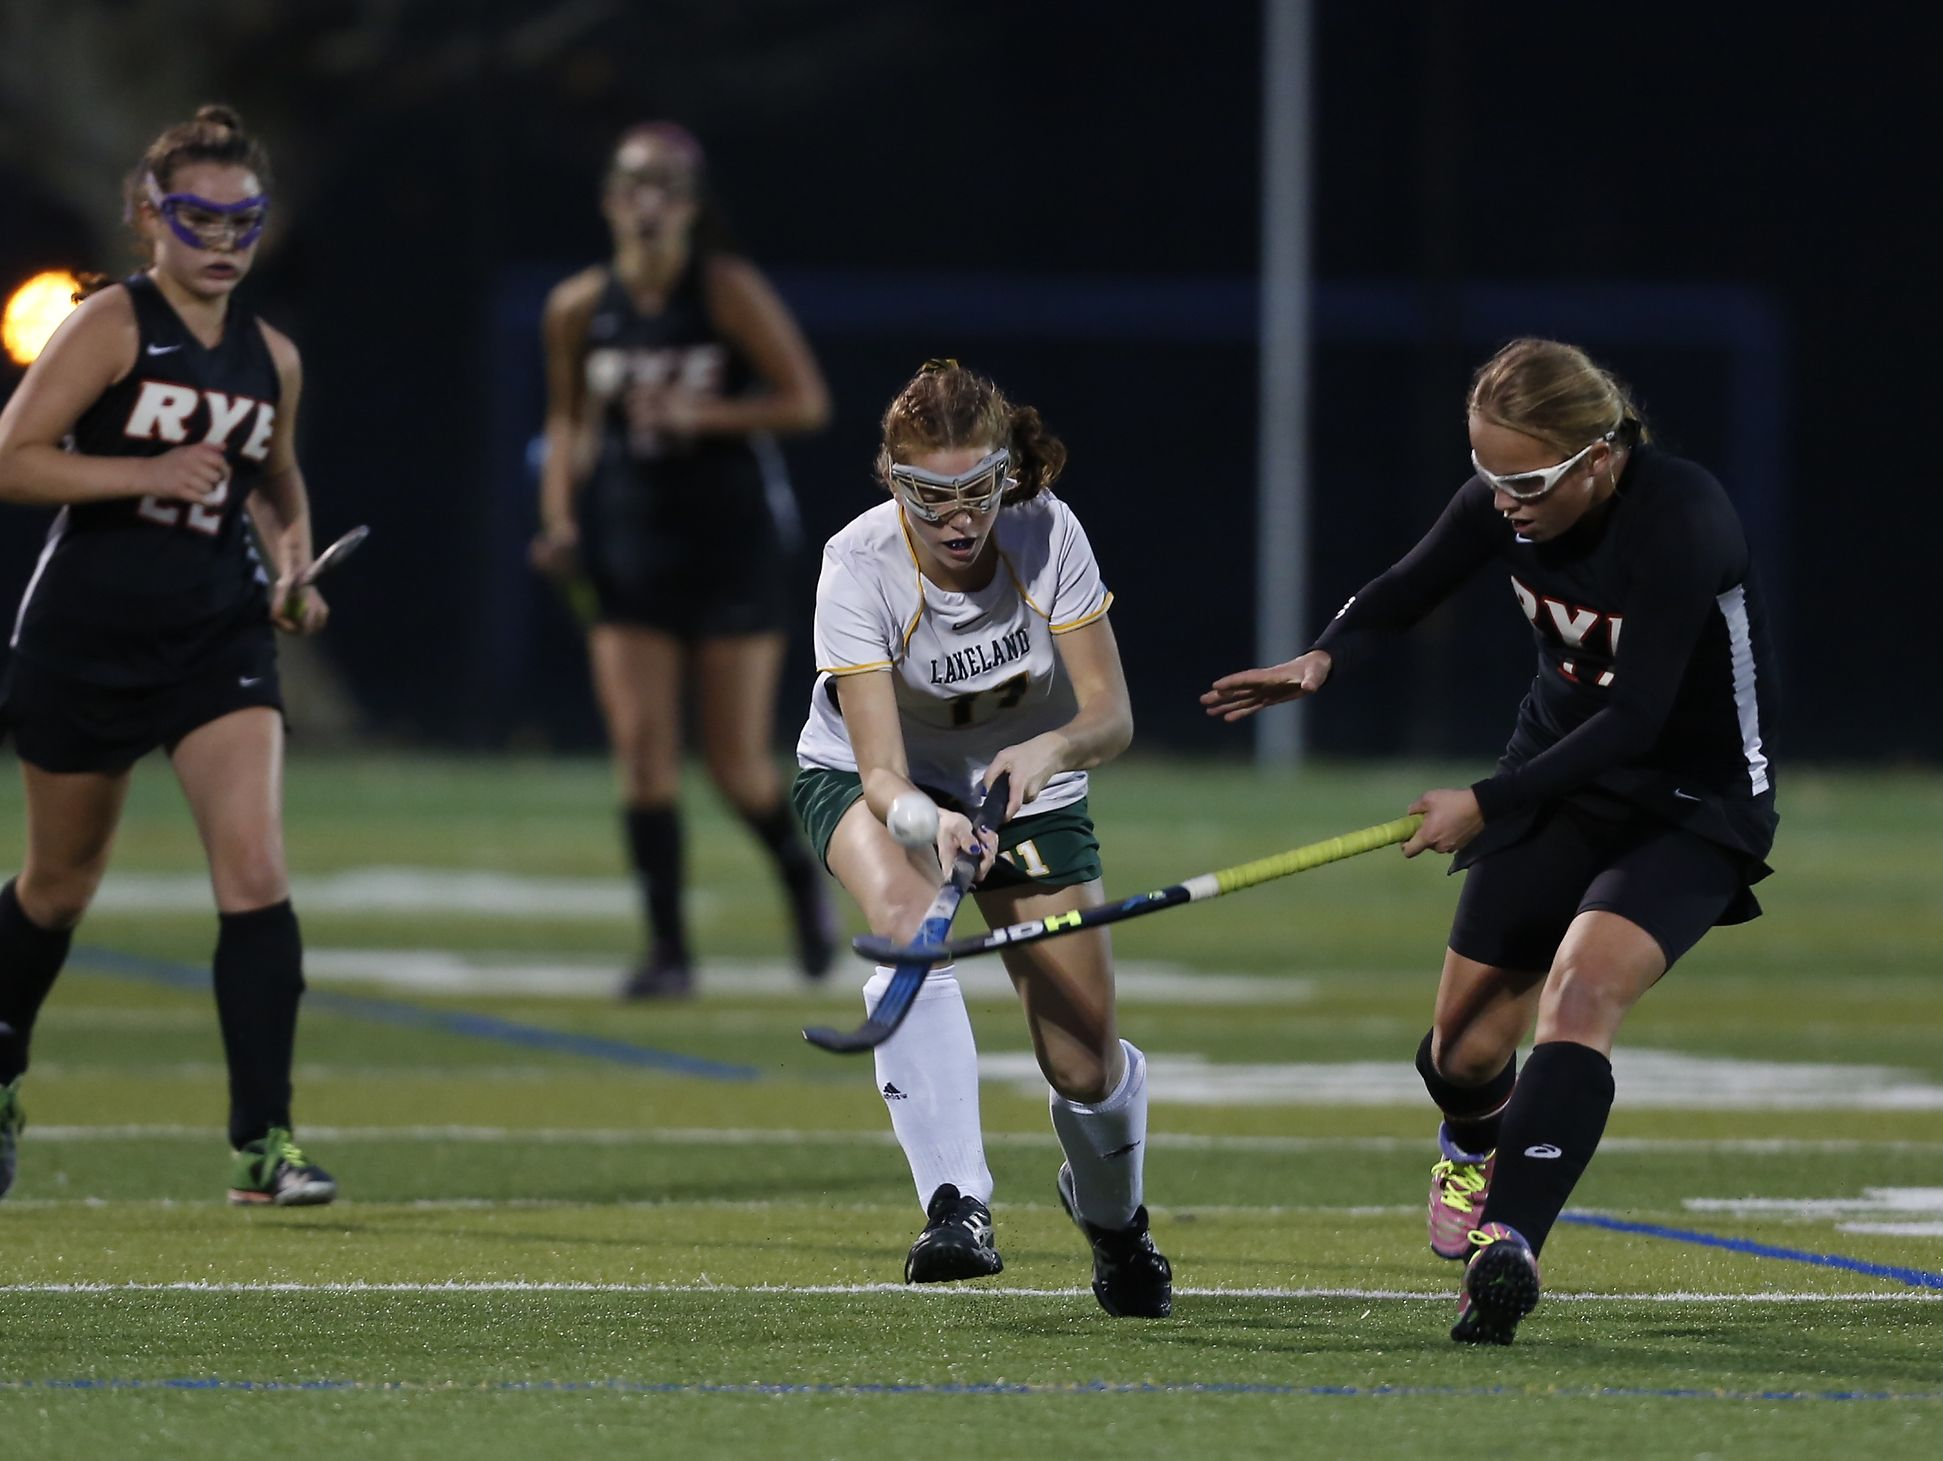 Lakeland's Julianna Cappello (11) flips the ball past a Rye defender during their 4-1 win in the Class B field hockey section finals at Brewster High School on Tuesday, November 1, 2016.